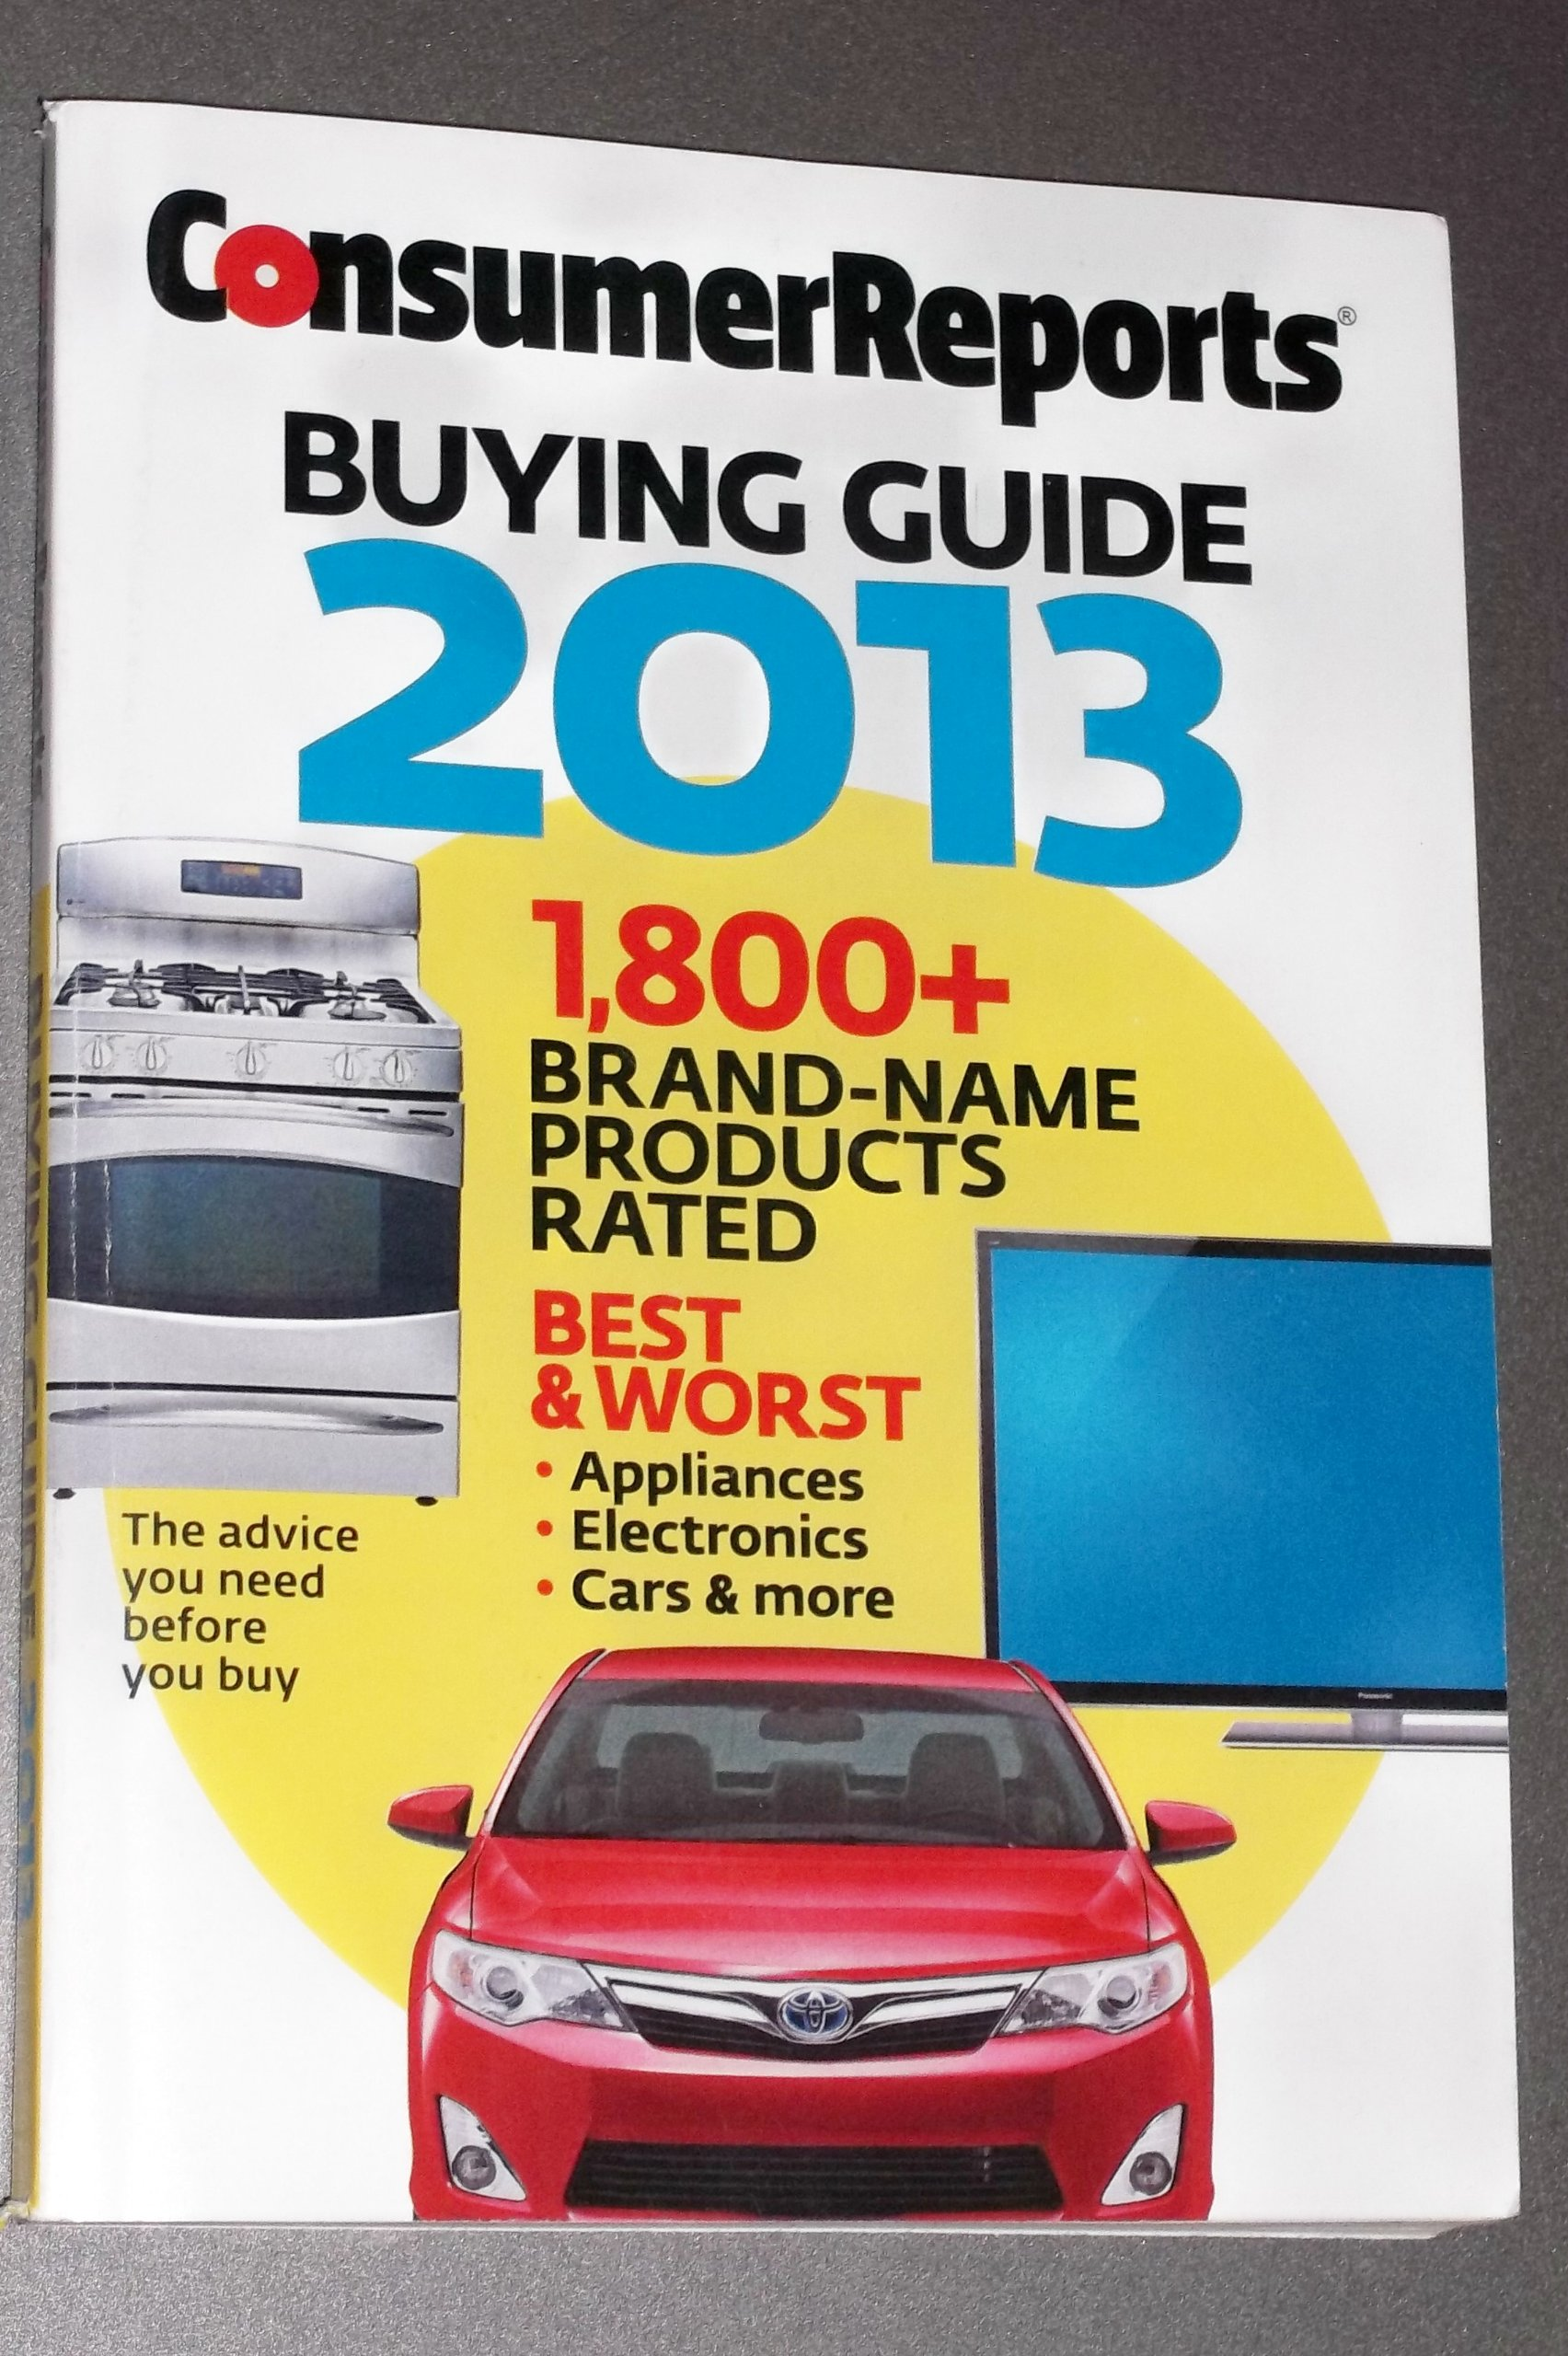 consumer reports buying guide 2013 consumer reports 0074851089781 rh amazon com Consumer Reports Magazine Consumer Reports Appliances